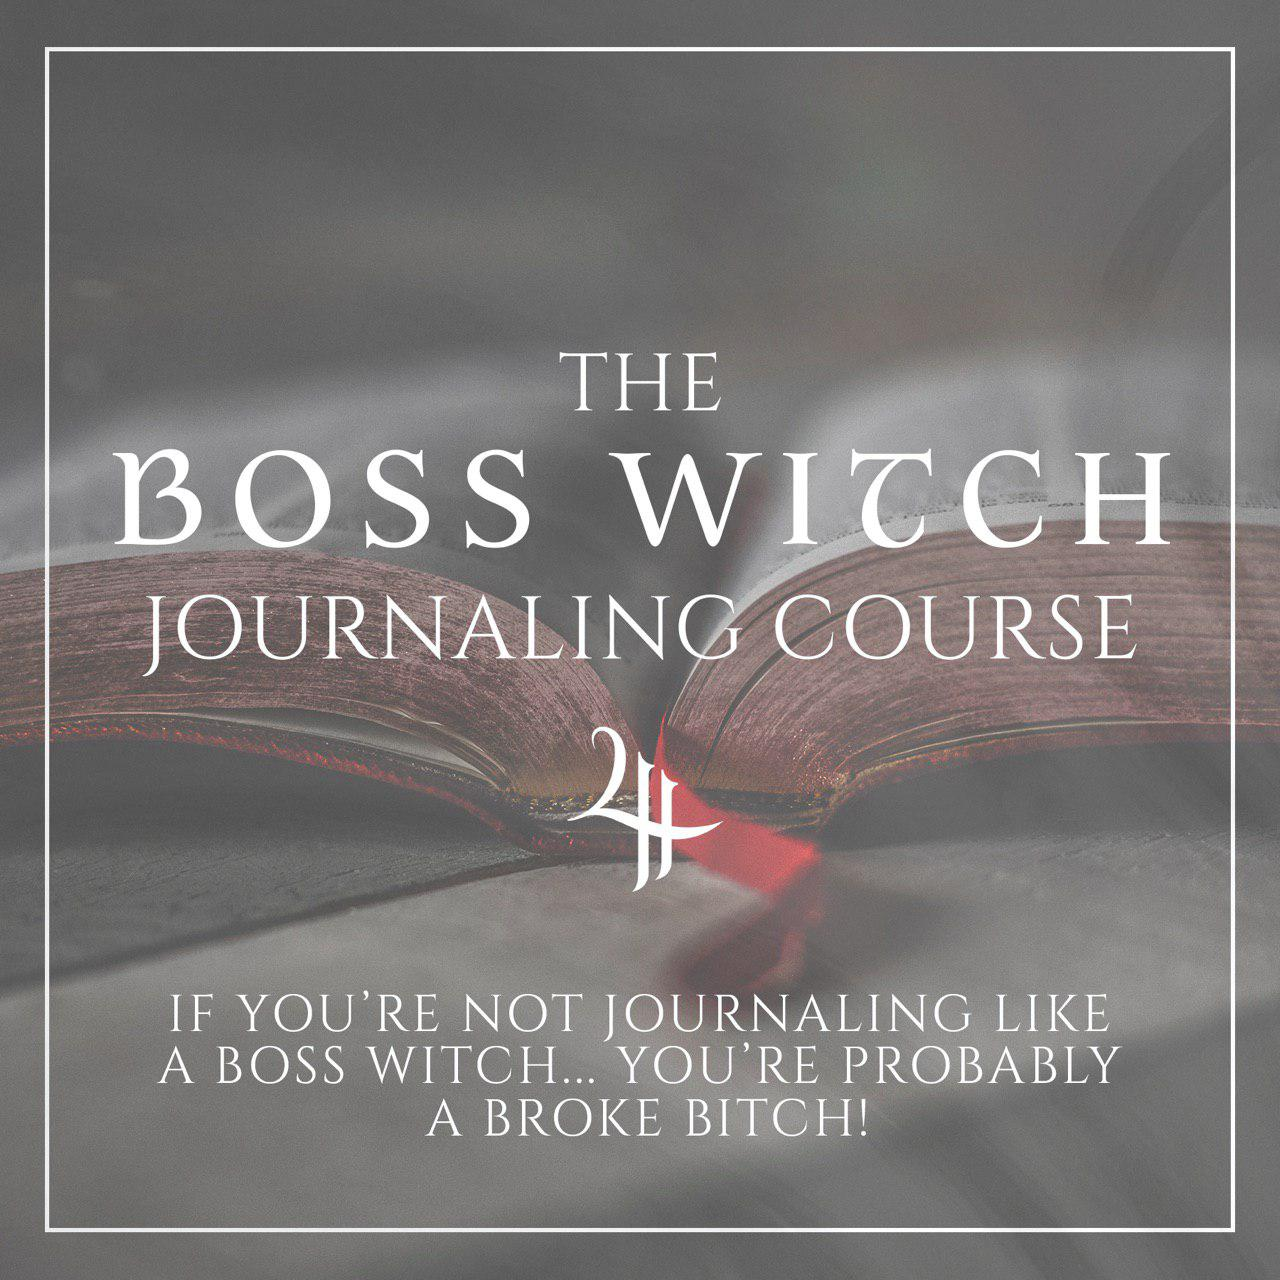 The Boss Witch Journaling Course